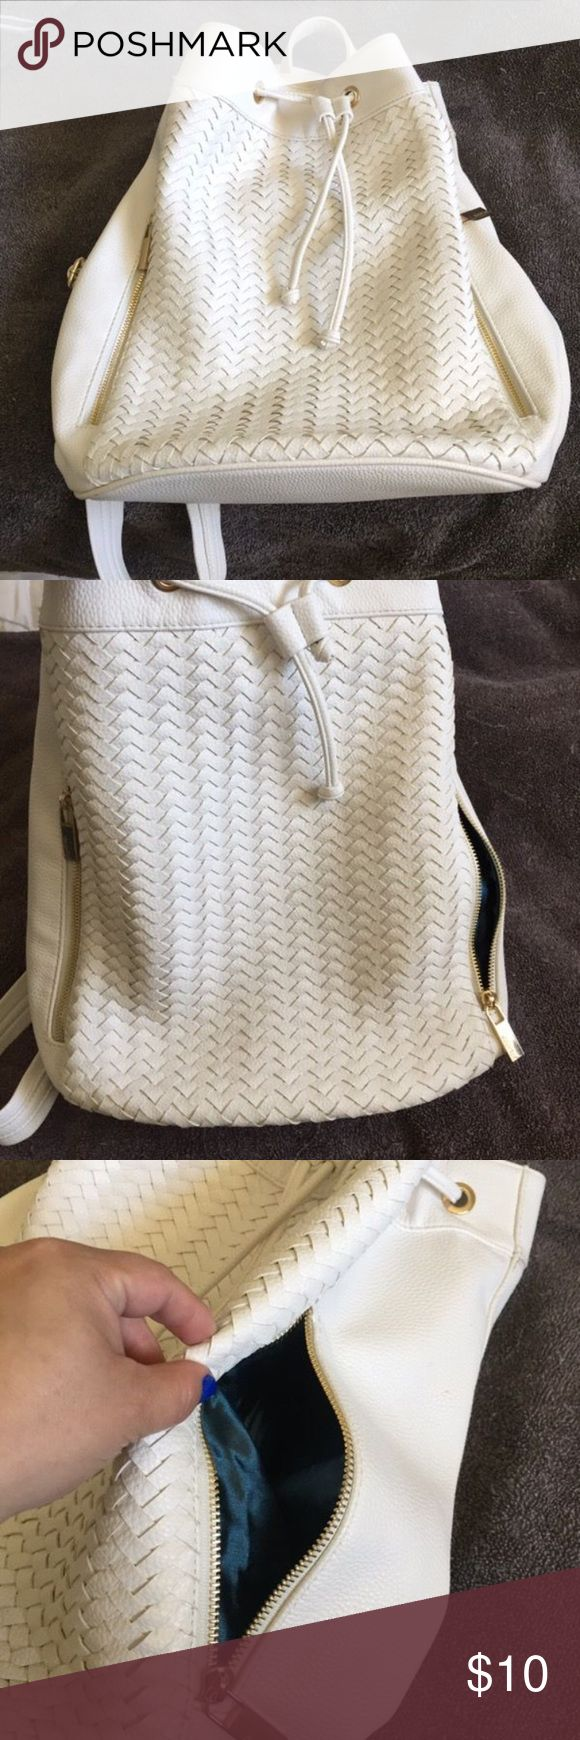 White Backpack White backpack, woven front, eggshell white, satin royal blue inside. Excellent condition. Medium size. Adjustable straps and drawstring closer. Deux Lux Bags Backpacks